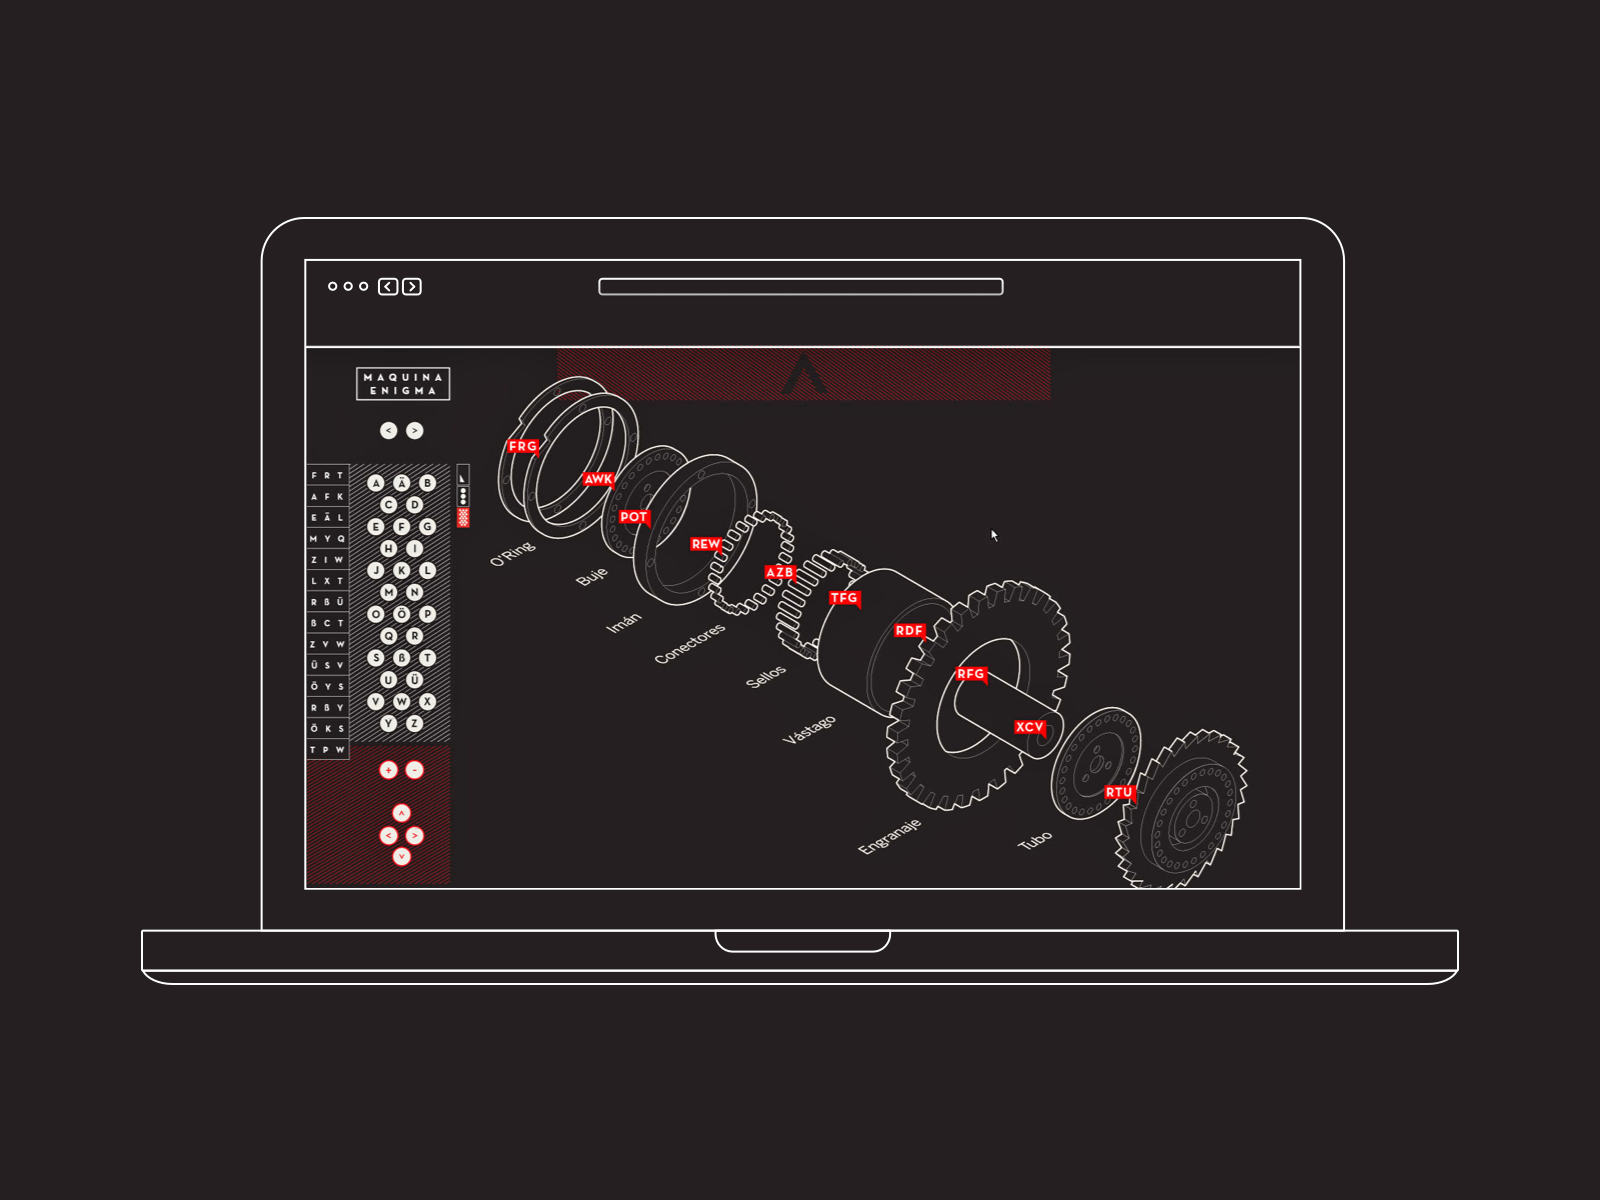 Enigma machine - Interactive website